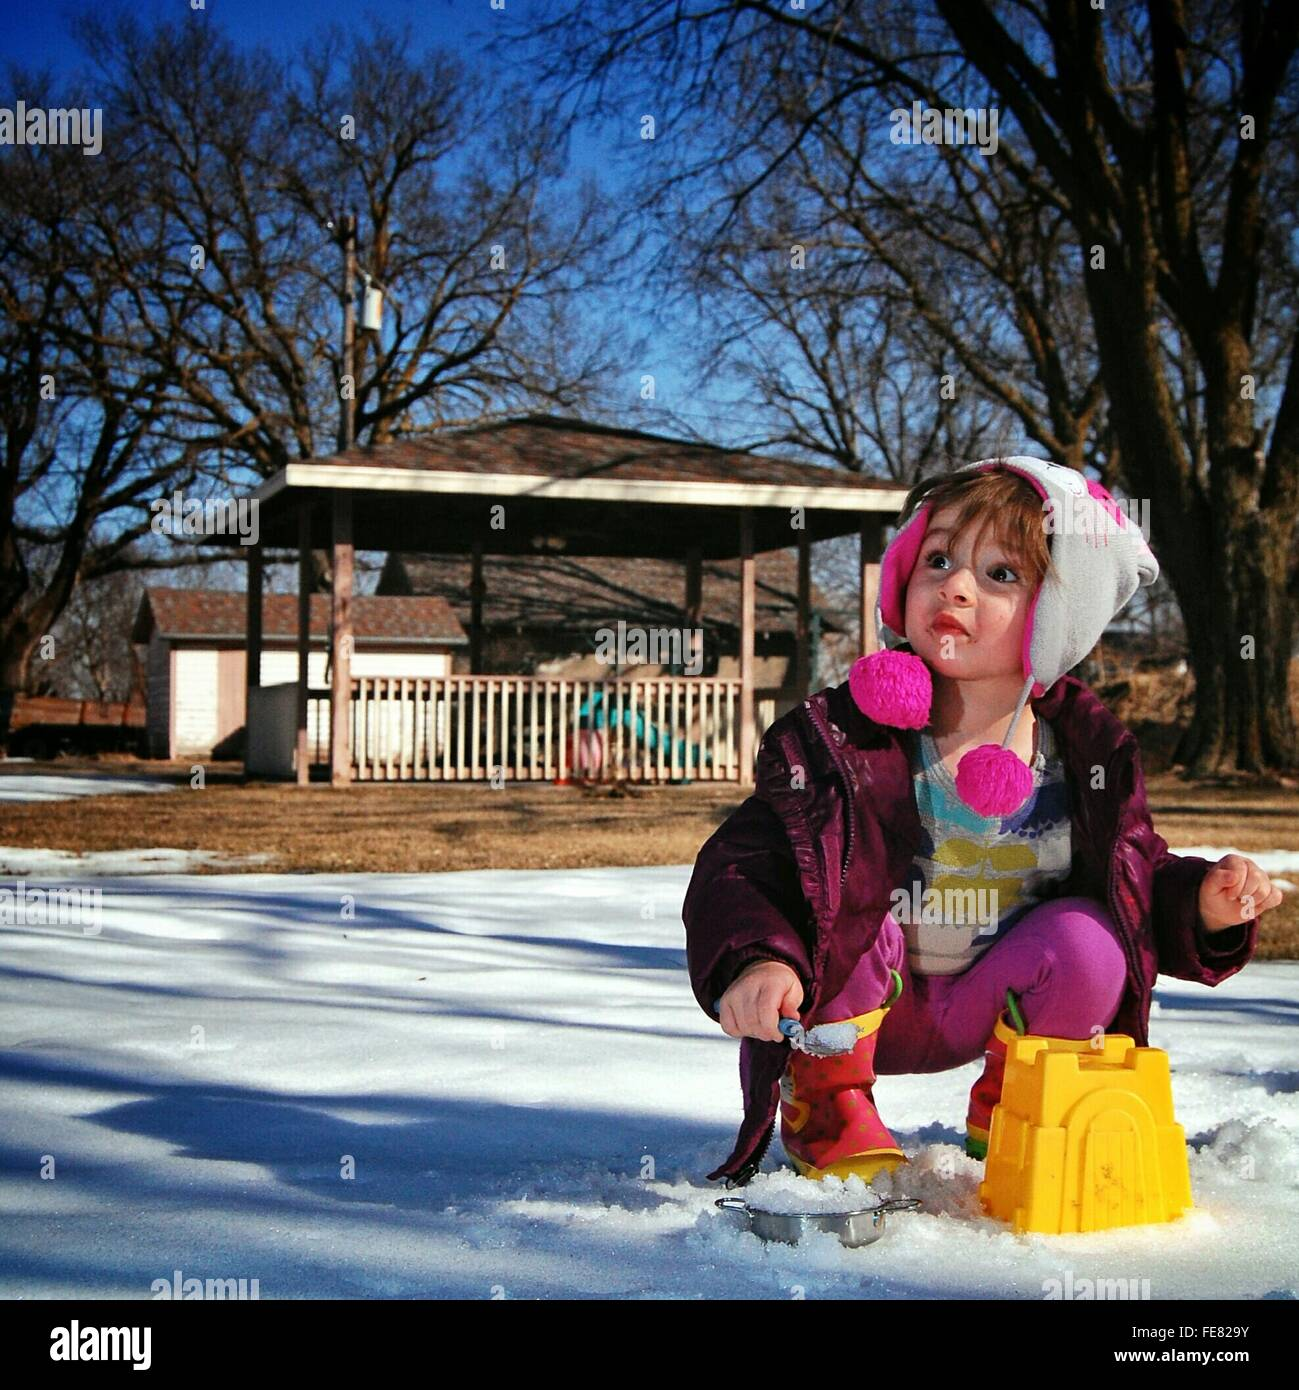 Cute Little Girl Playing in snow Photo Stock